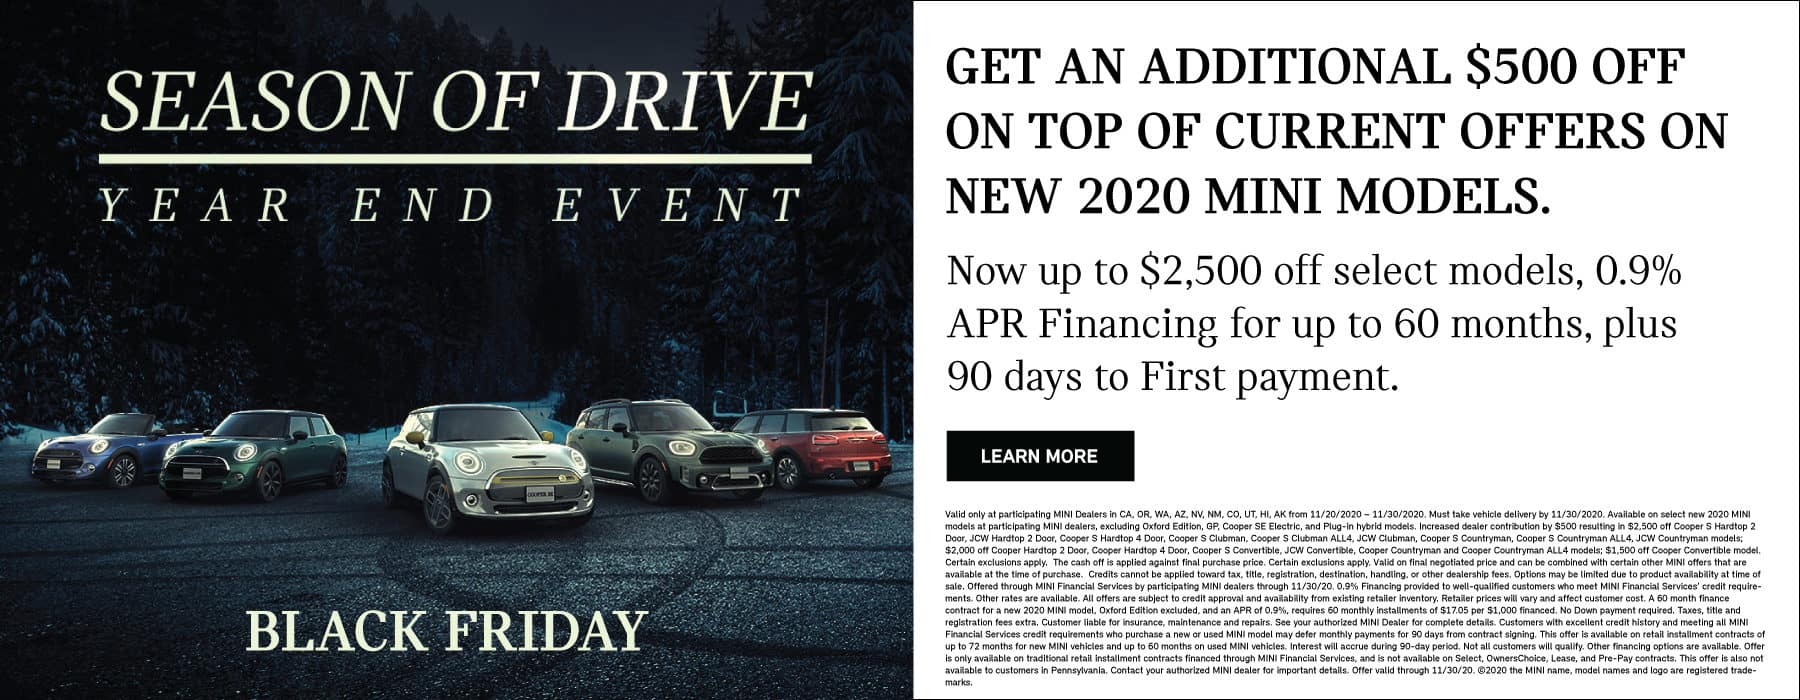 BLACK FRIDAY. GET AN ADDITIONAL $500 OFF ON TOP OF CURRENT OFFERS ON NEW 2020 MINI MODELS. NOW UP TO $2,500 OFF SELECT MODELS, 0.9% APR FINANCING FOR UP TO 60 MONTHS, PLUS 90 DAYS TO FIRST PAYMENT. SEE DEALER FOR COMPLETE DETAILS.